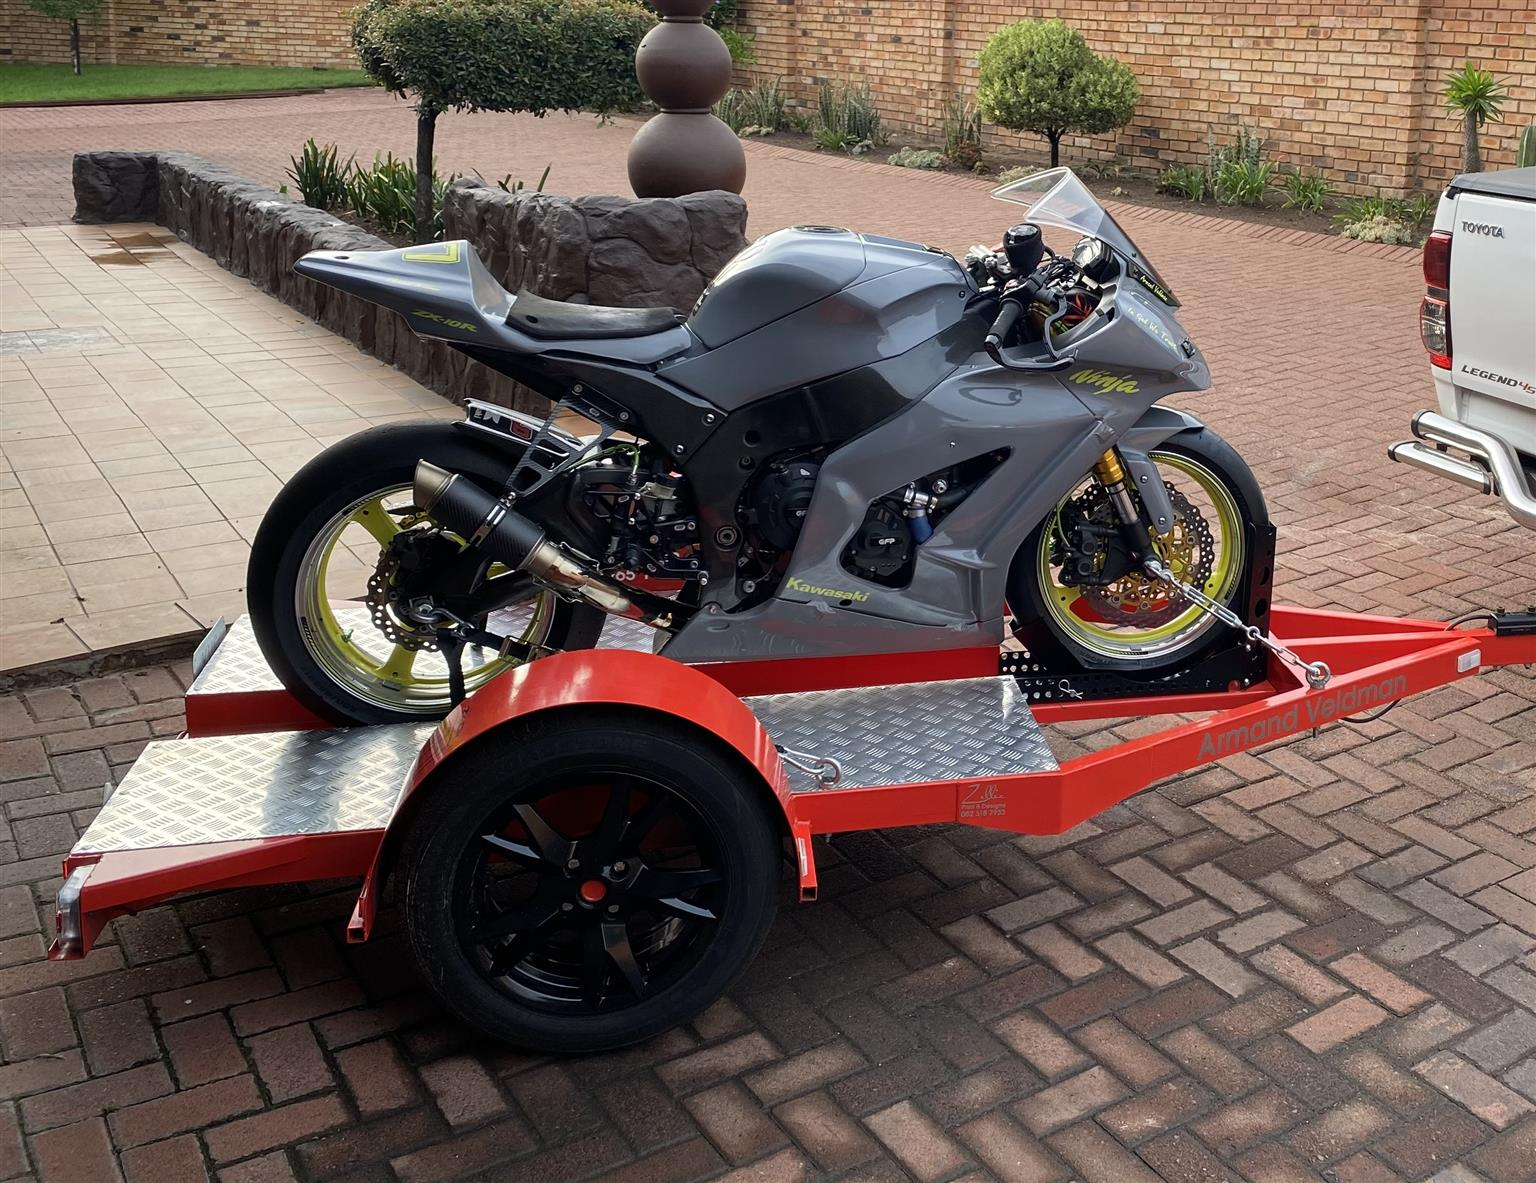 2013 Zx10R with trailer